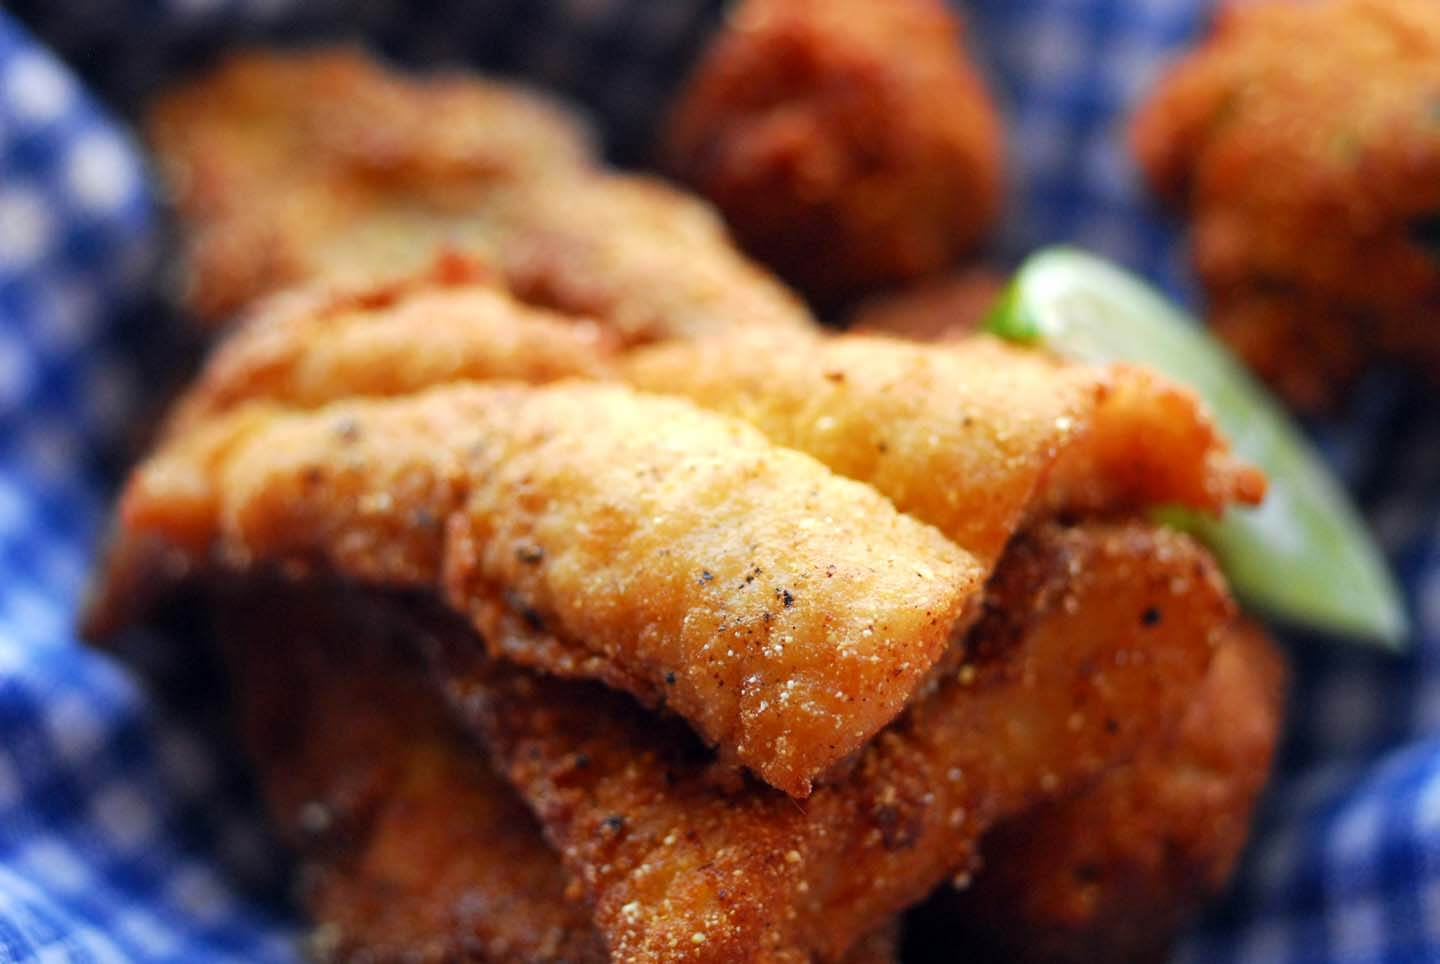 Fried catfish with hushpuppies and chipotle dipping sauce | Homesick Texan